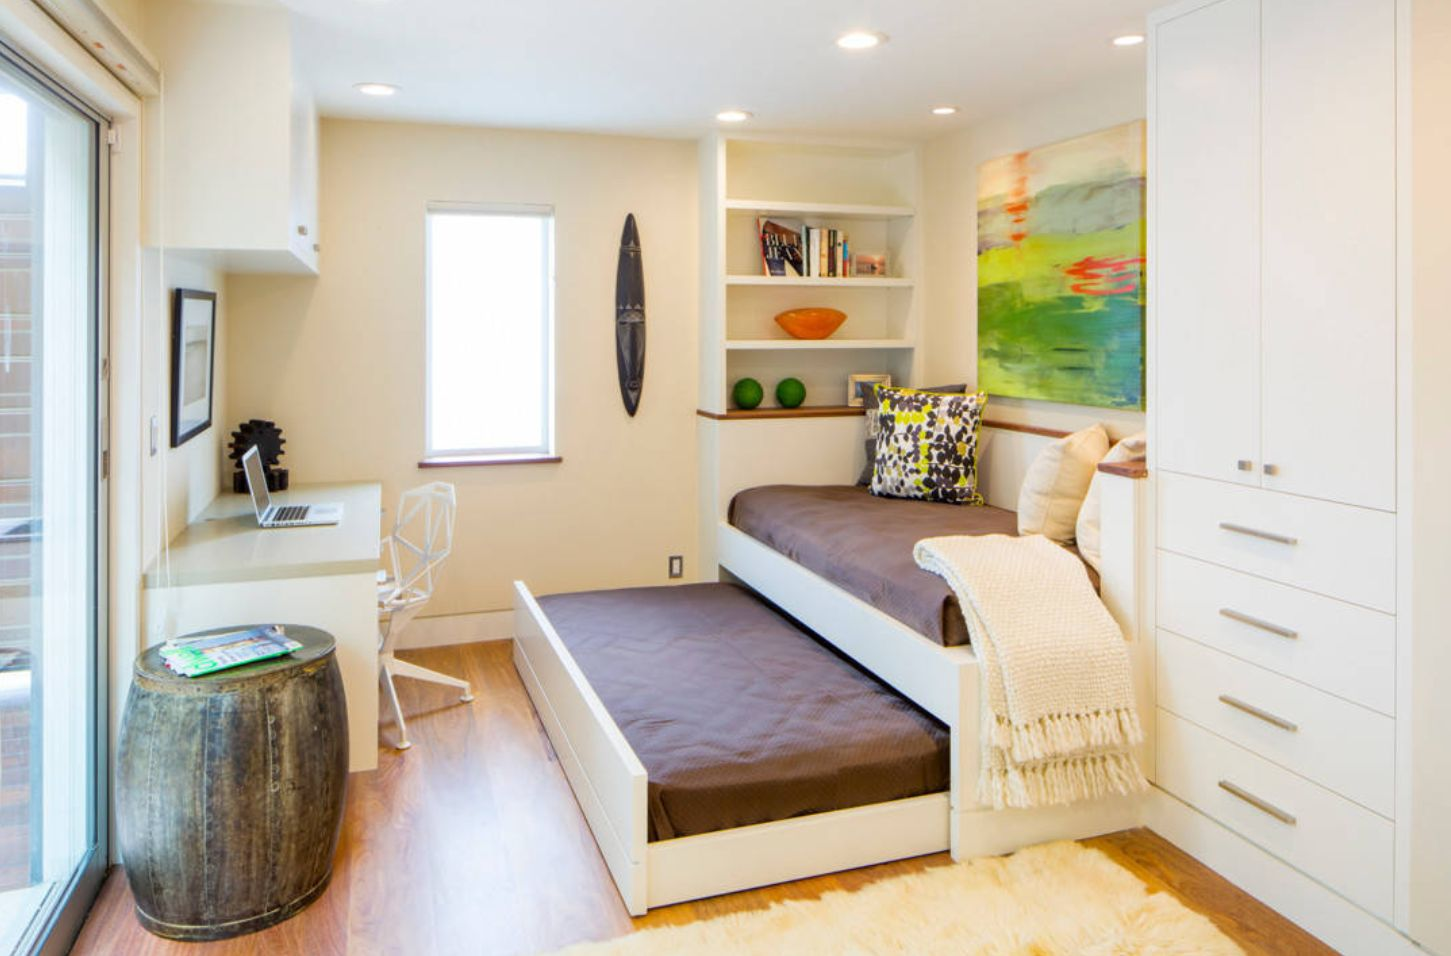 Cool Beds For Small Rooms With Limited Storage on Teenage Beds For Small Rooms  id=94101